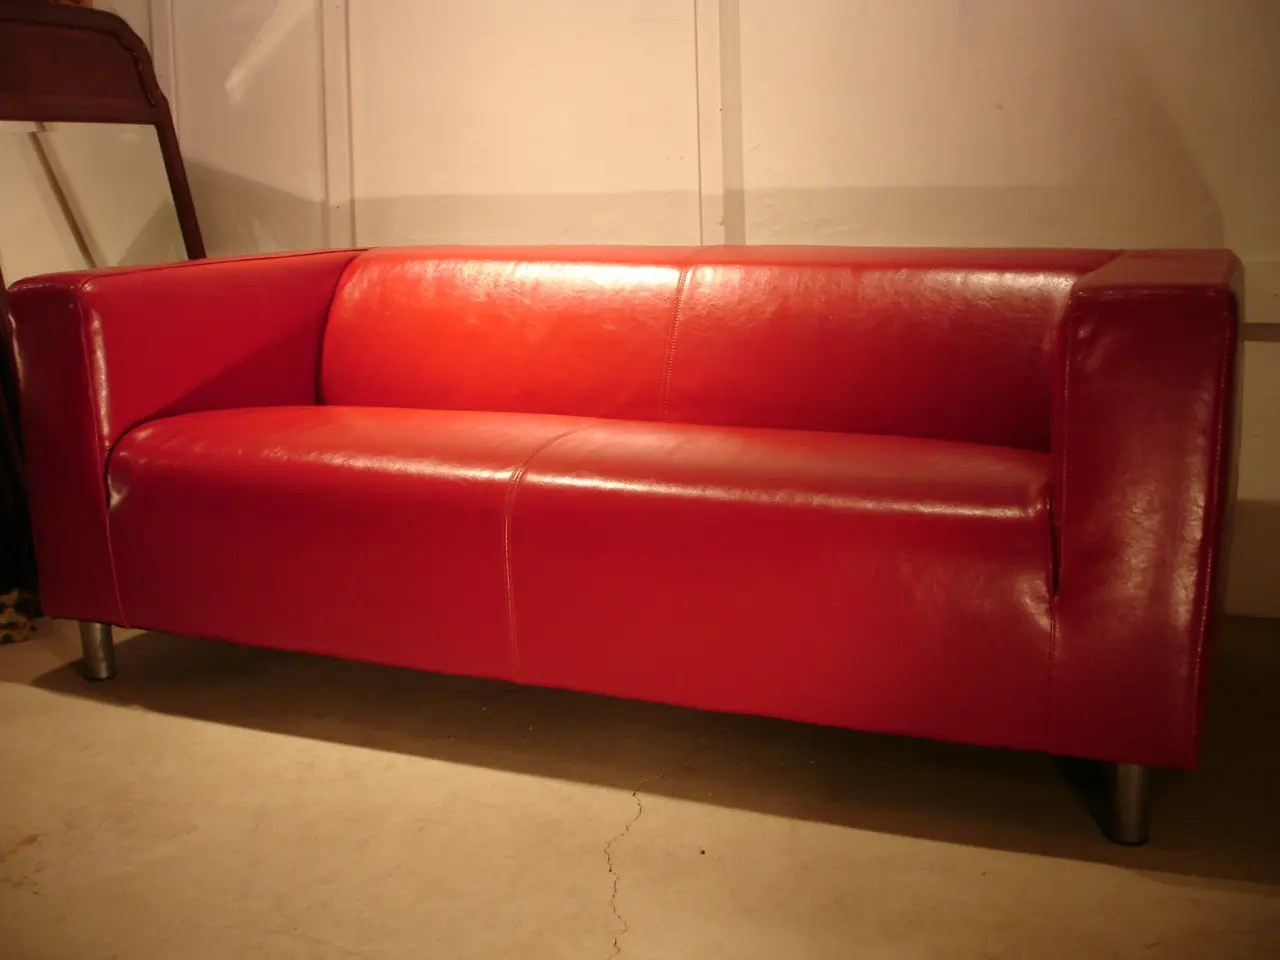 Ikea Sofa Klippan How To Fix My Leather Klippan Sofa Will Replacement Covers Work